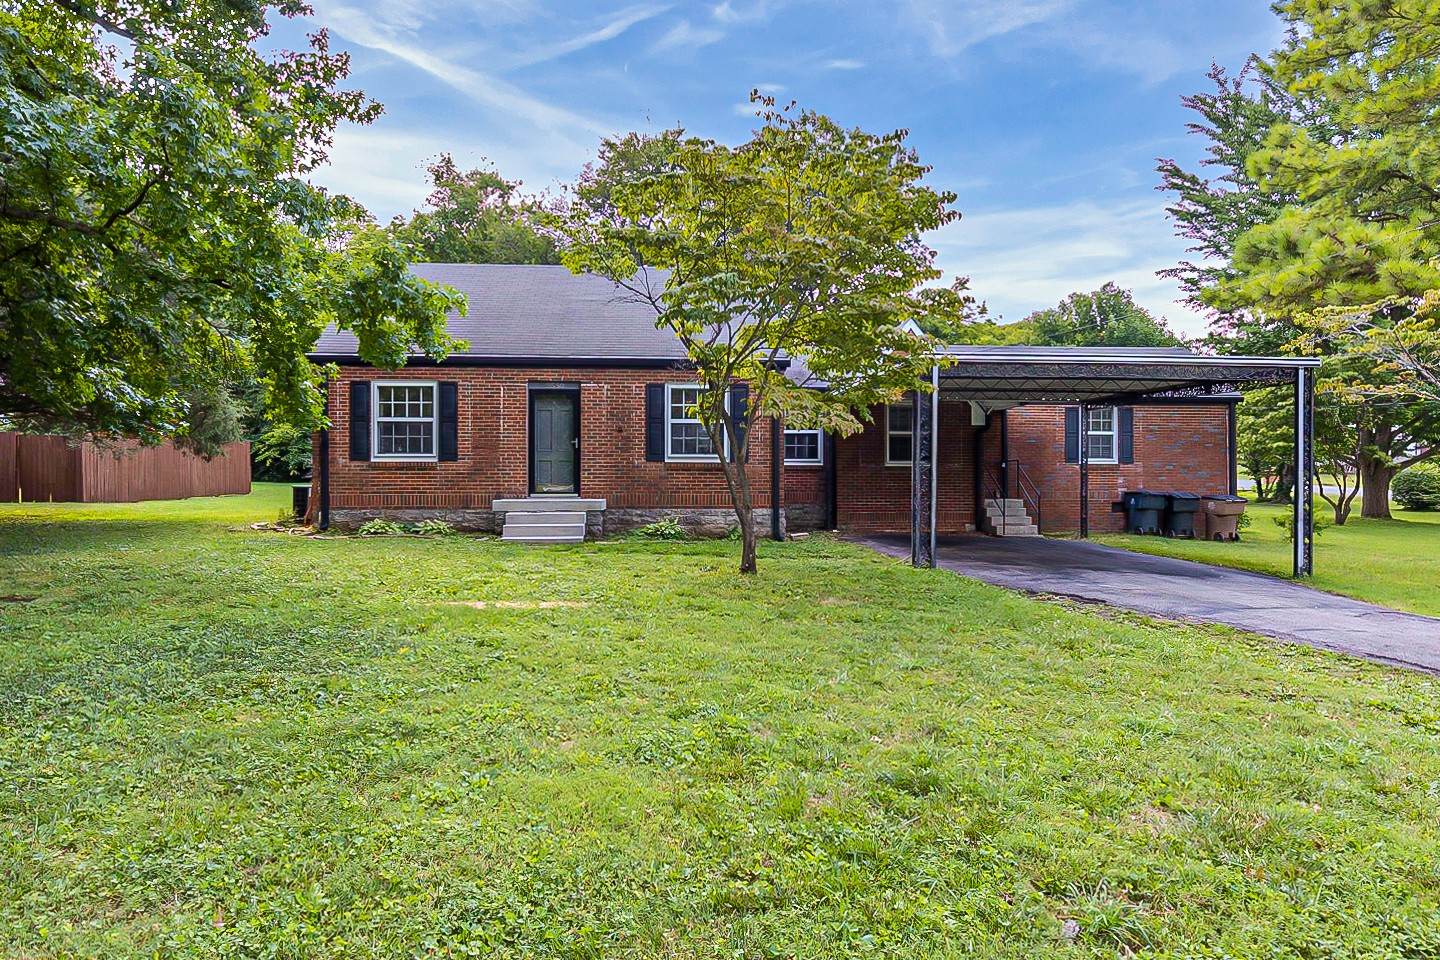 HOT Donelson location so close to everything! Airport, Shoping, Dining, Parks, and downtown! This Cozy Ranch home features separate dinning, Office/Den, 2 full baths. New Carpet in Bedrooms. An unfinished attic space offer bonus storage or ready to make your own.